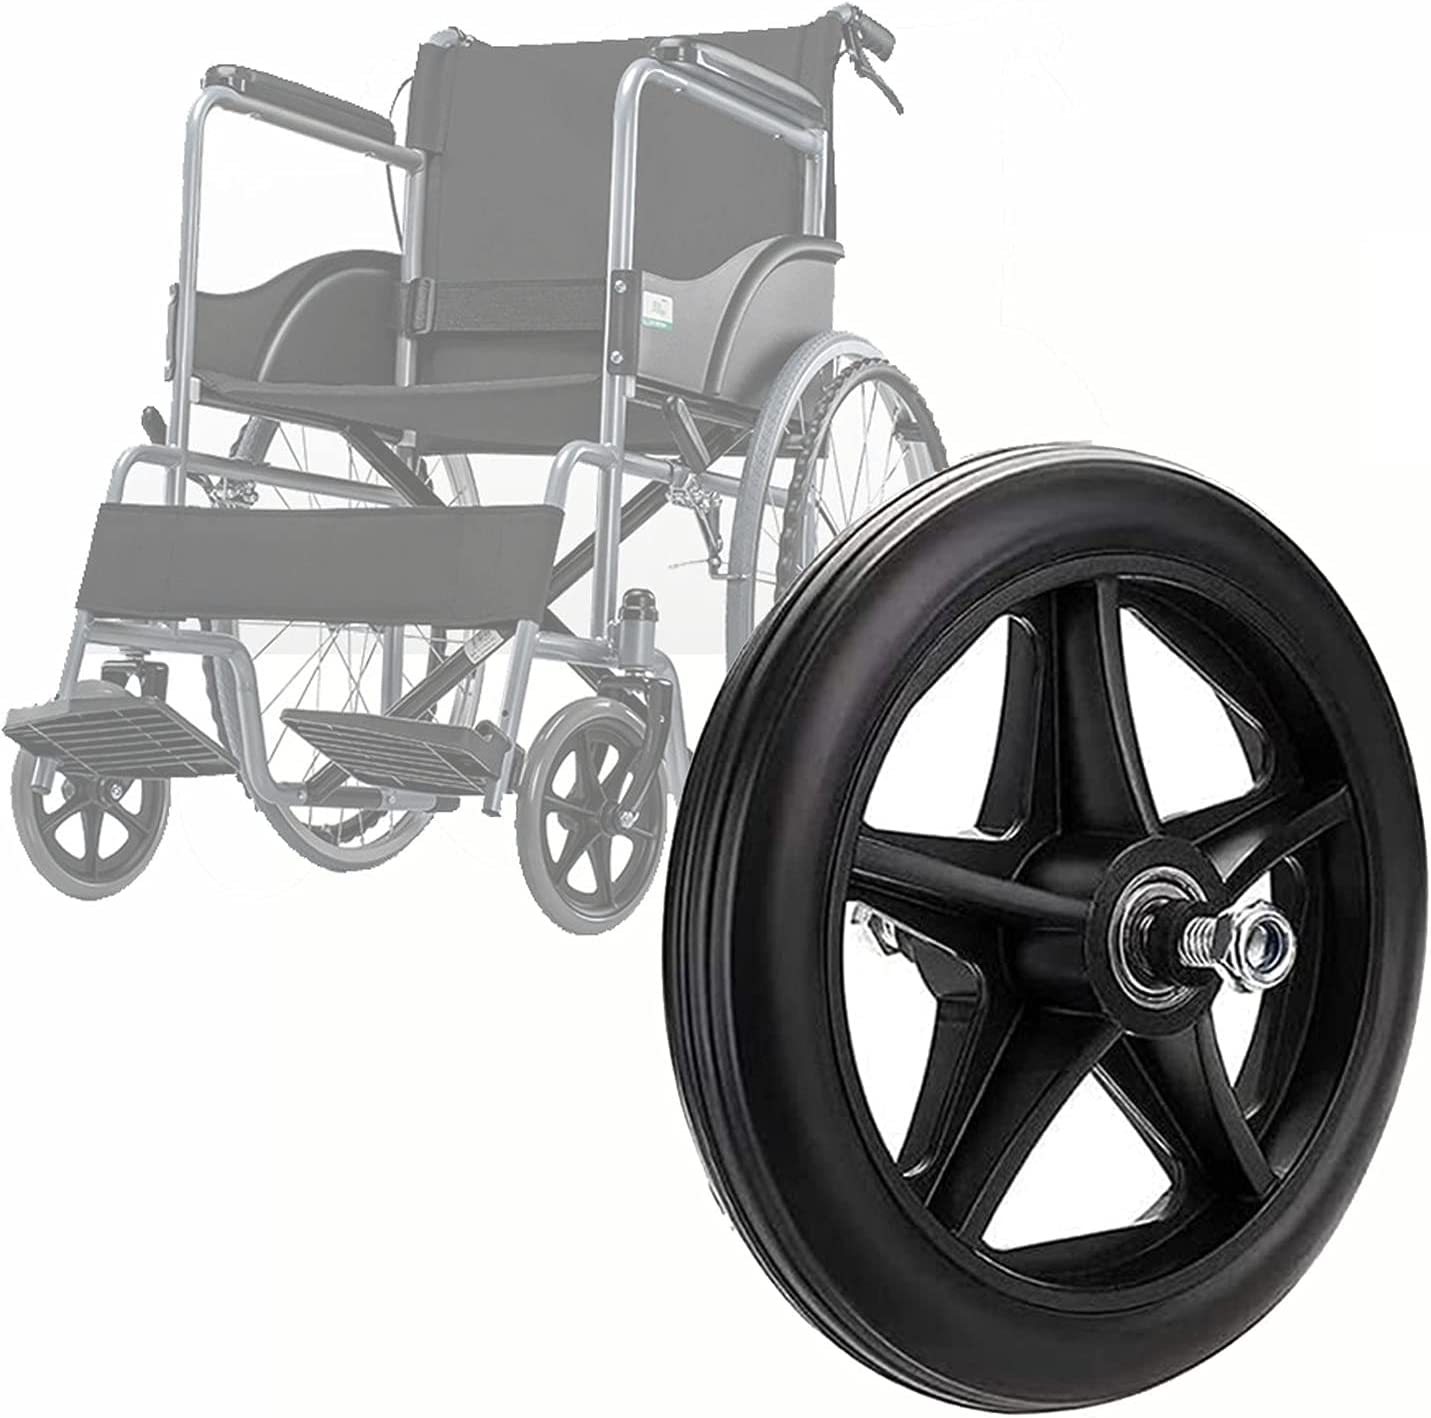 ASDFGHJ Black Wheelchair Front Wheels, Replacing The Caster Whee